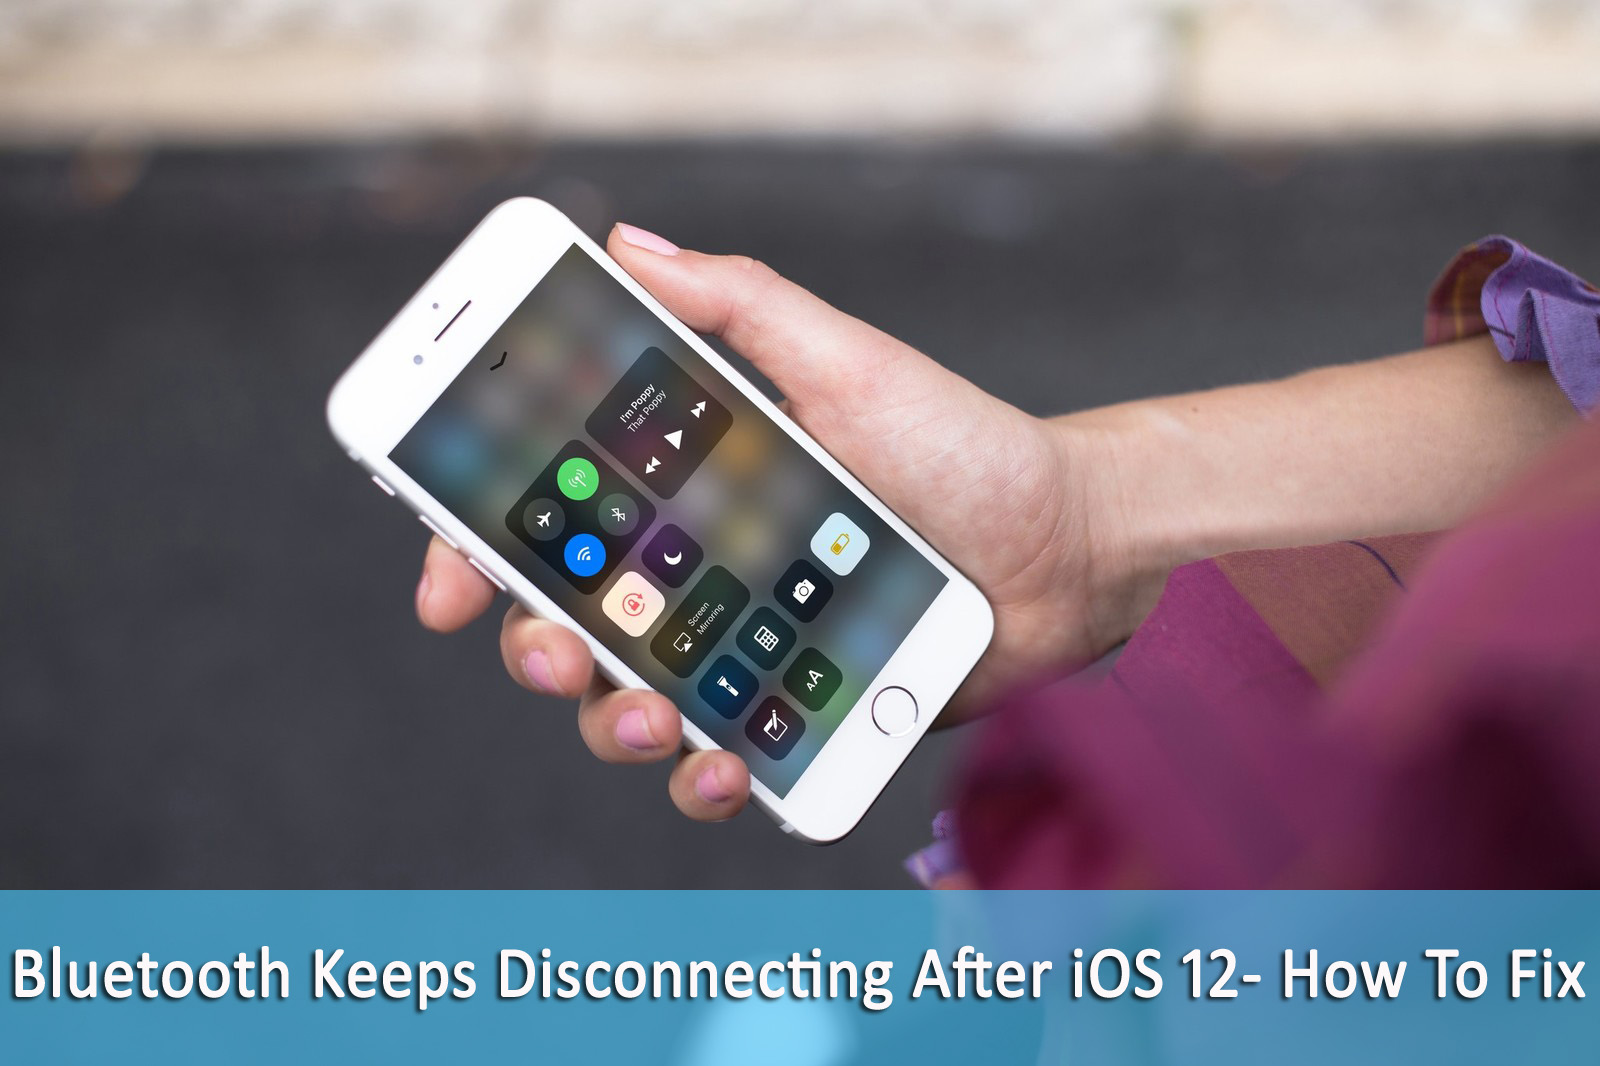 Bluetooth Keeps Disconnecting After iOS 12- 9 Effective Methods To Fix It